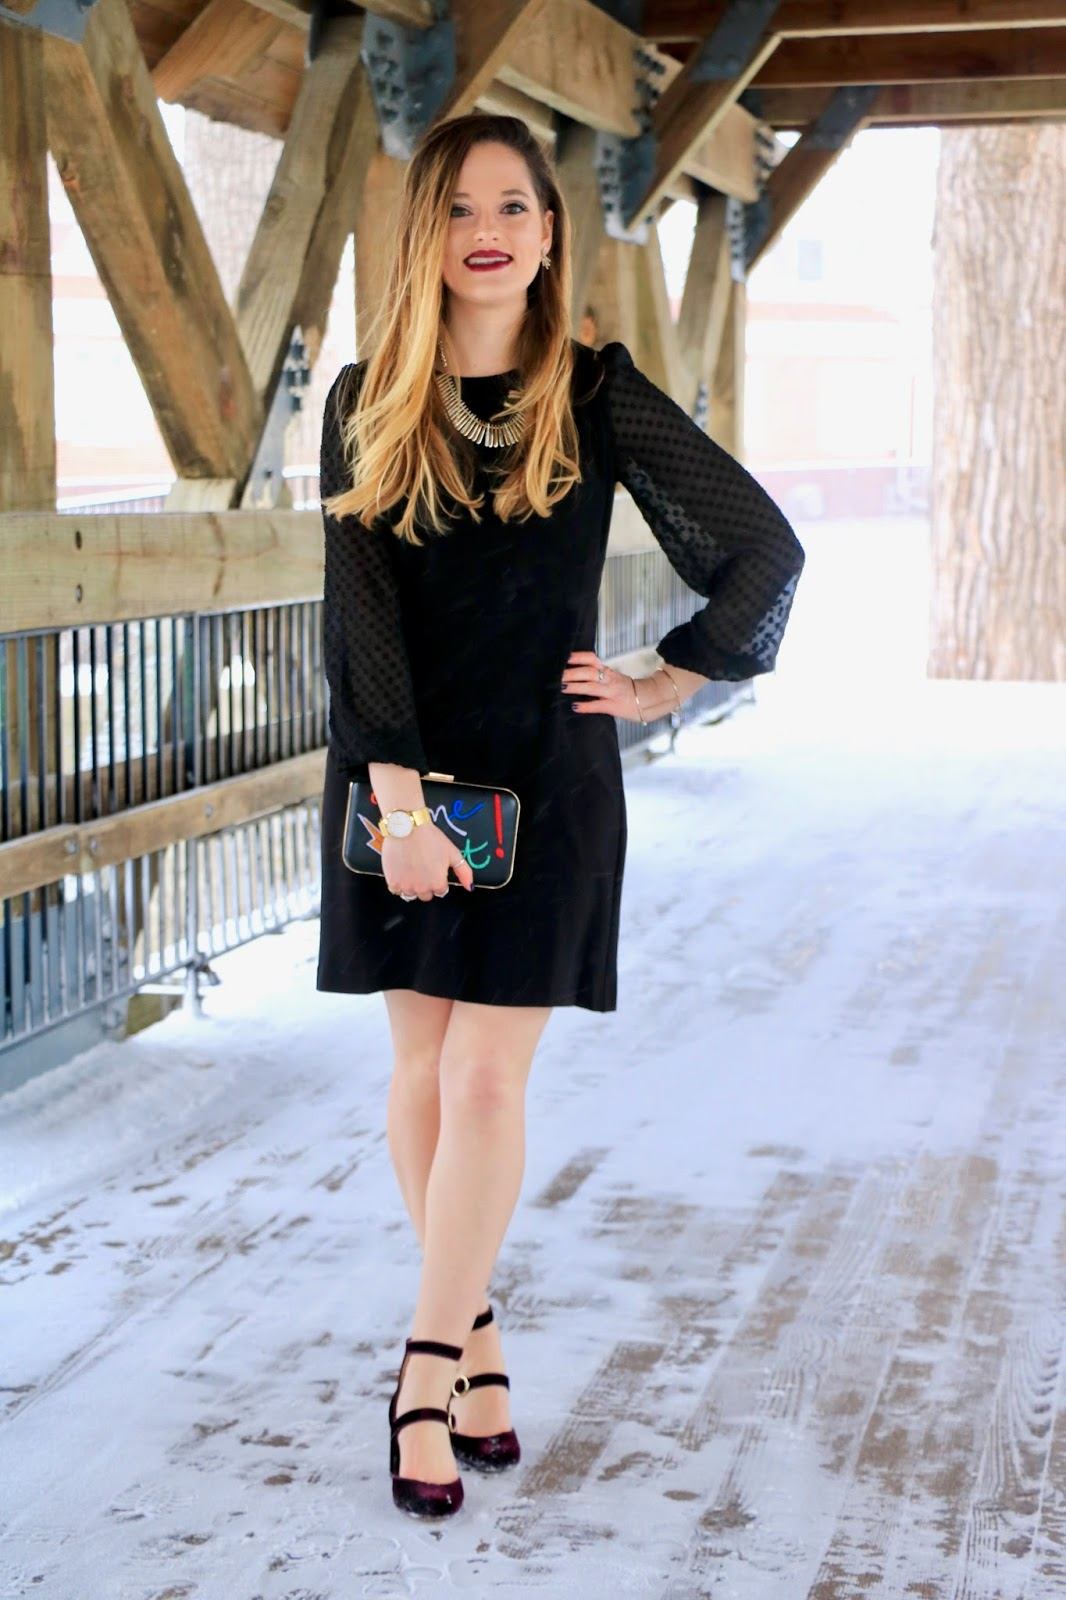 Nyc fashion blogger Kathleen Harper wearing a black dress with sheer sleeves